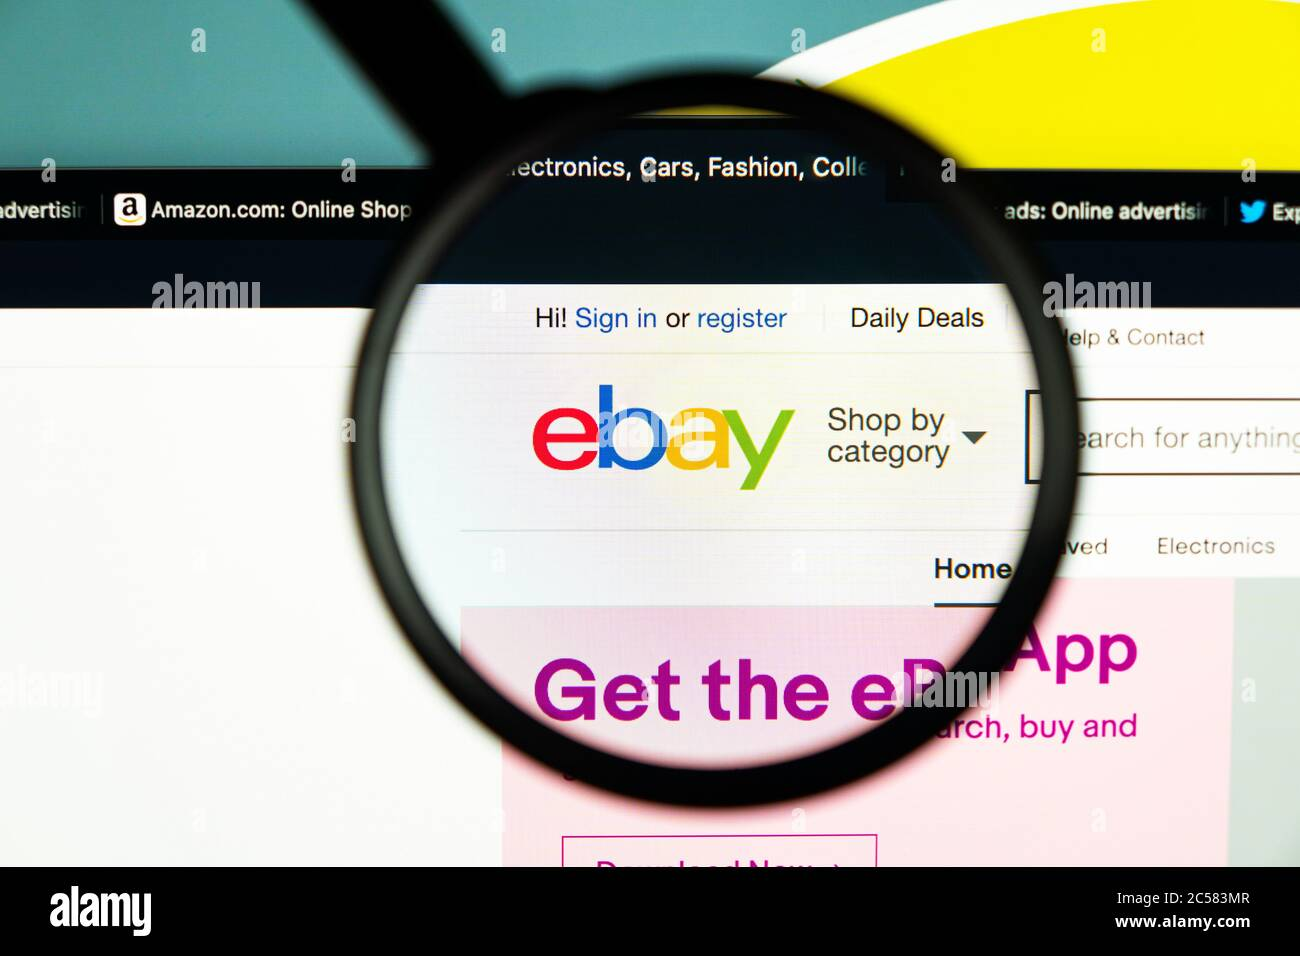 Sankt Petersburg Russia June 16 2020 Ebay Application Icon On Apple Imac Screen Under Magnifying Glass Ebay App Icon Ebay Com Is Largest Online Stock Photo Alamy